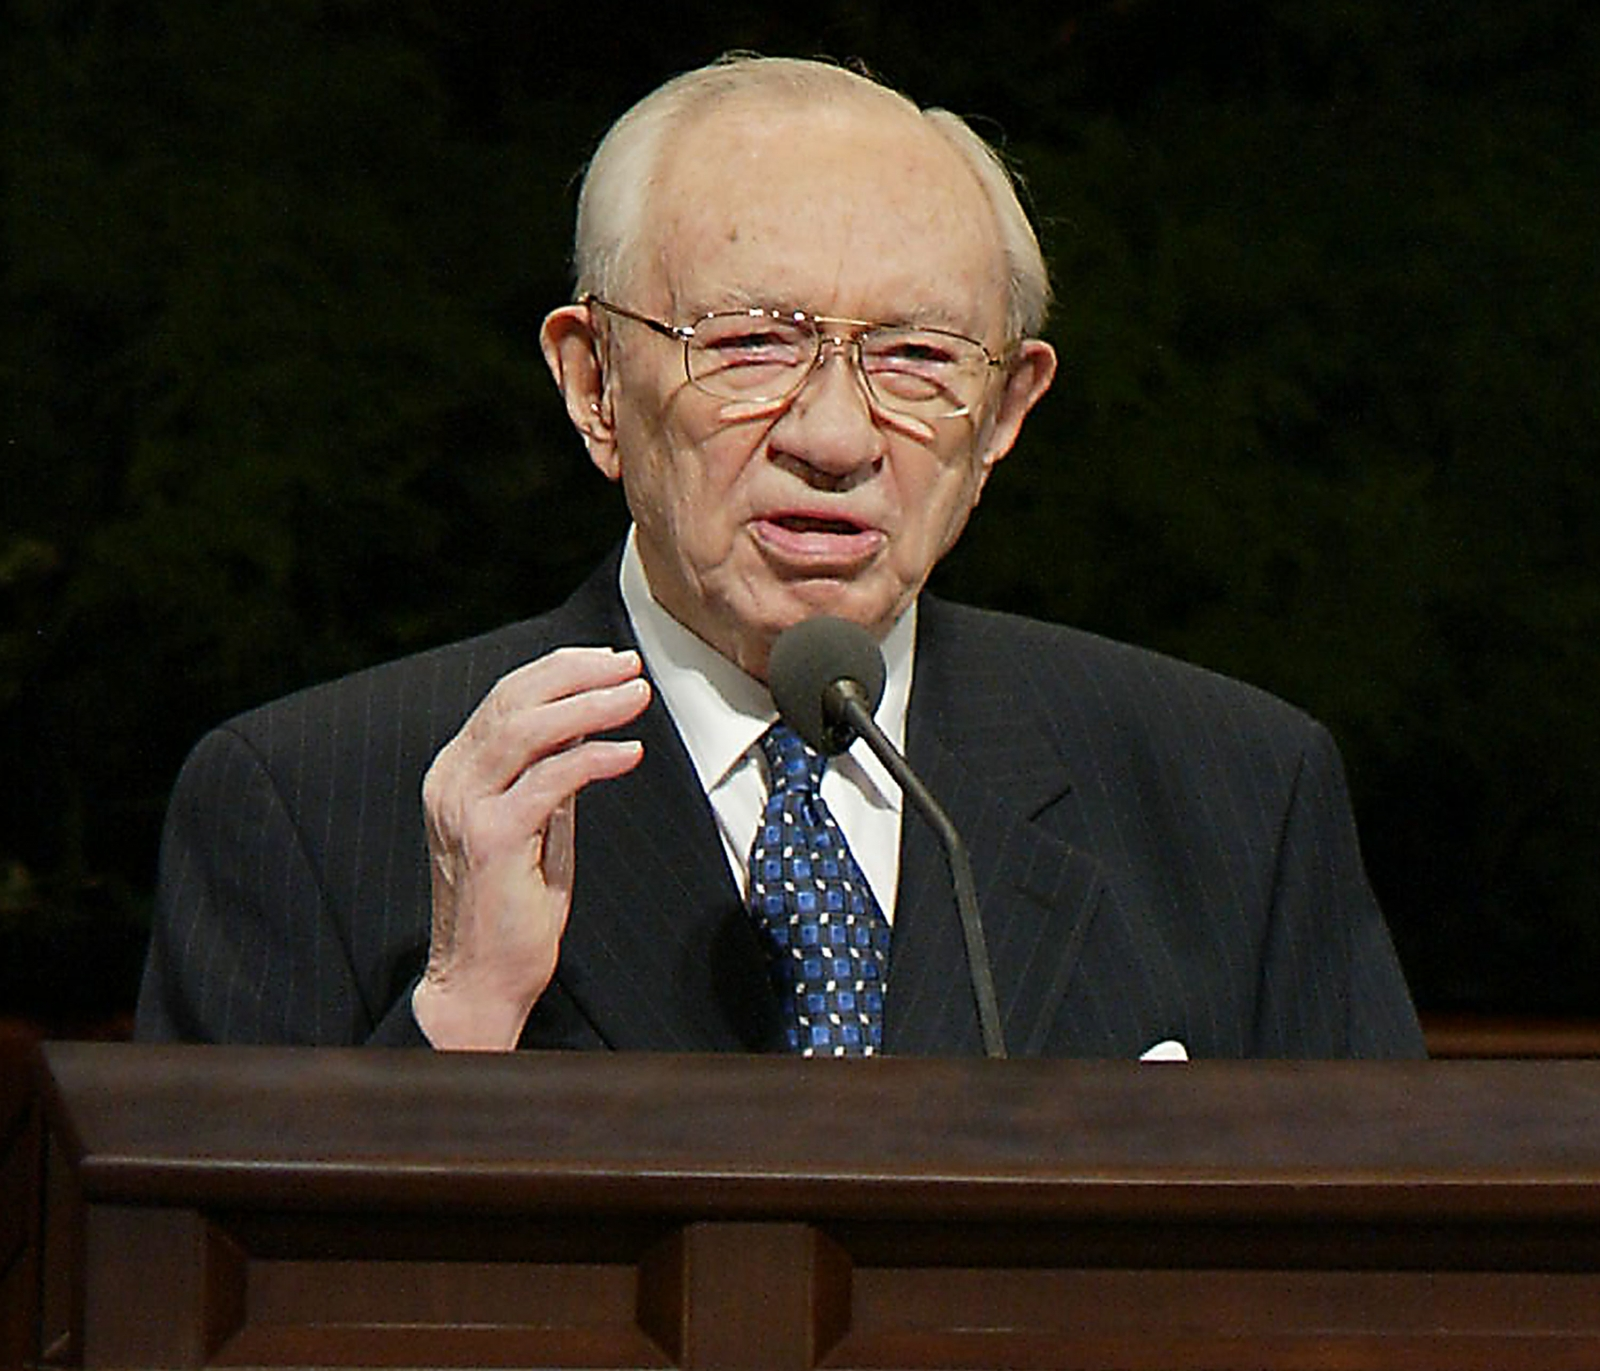 Gordon B. Hinckley, President of the Church of Jesus Christ of Latter Day Saints until his death in 2008